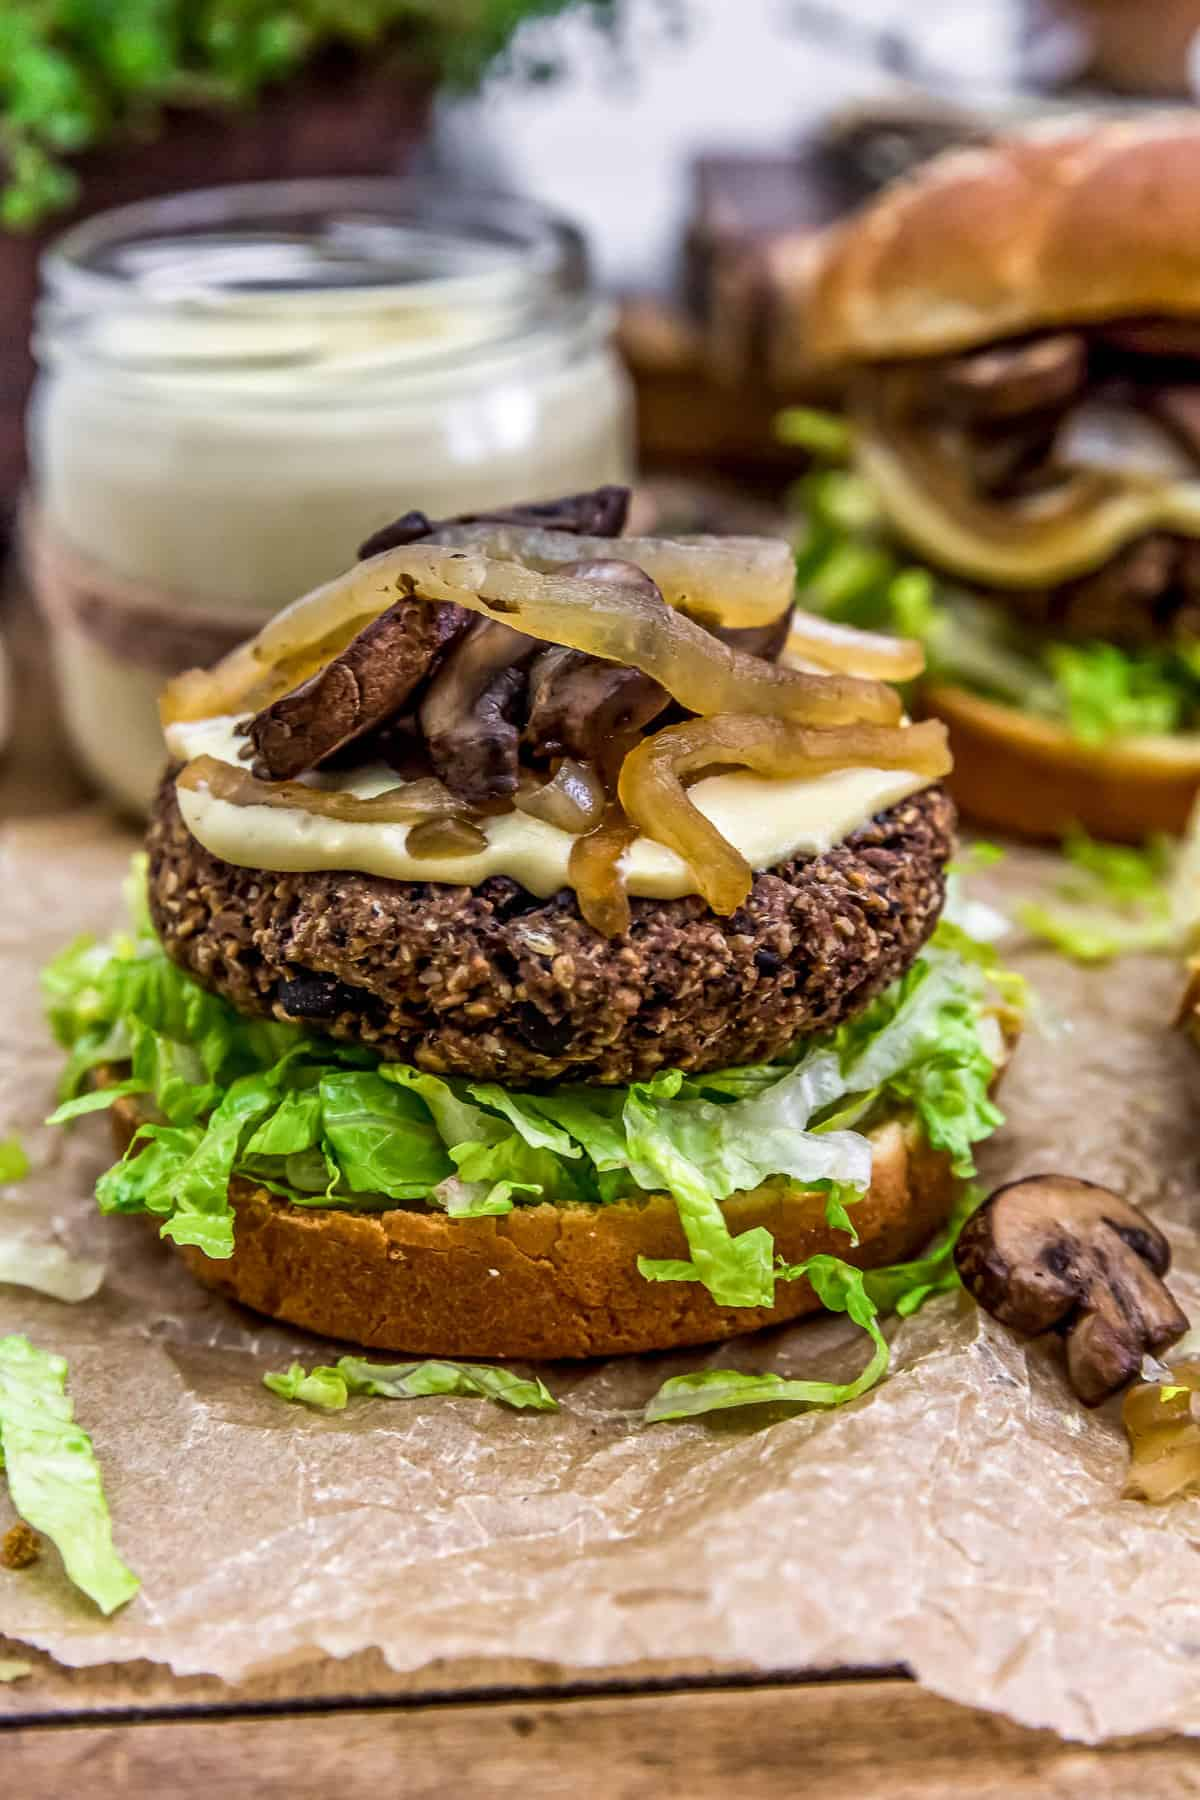 Vegan Patty Melt Burger topped with mushrooms and onions